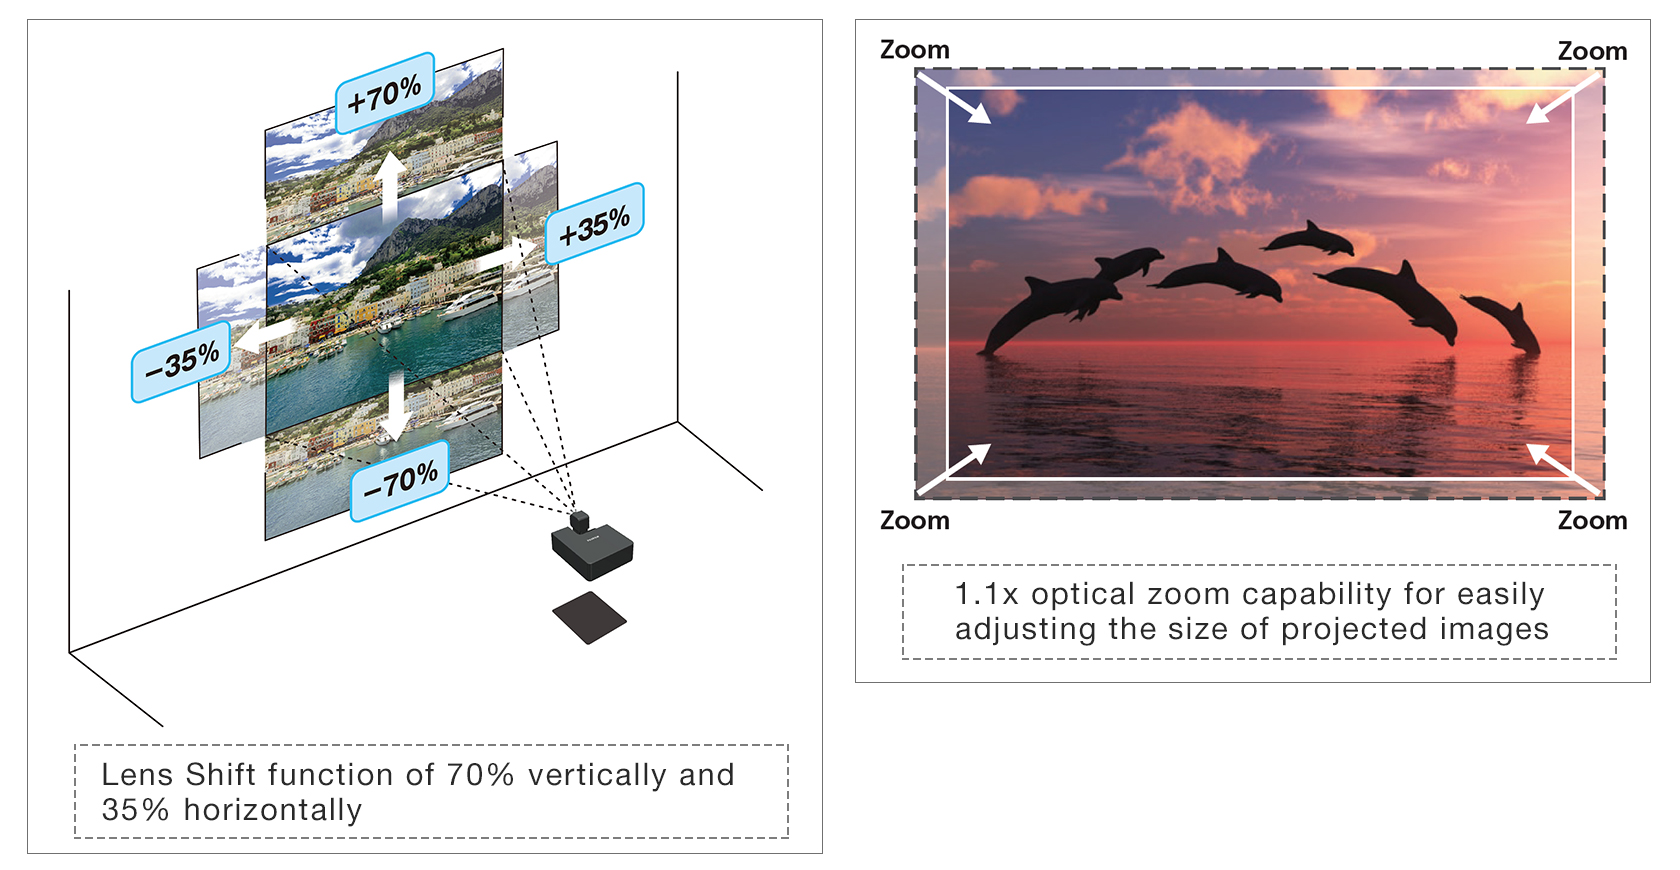 [Image]Lens Shift function of 70% vertically and 35% horizontally